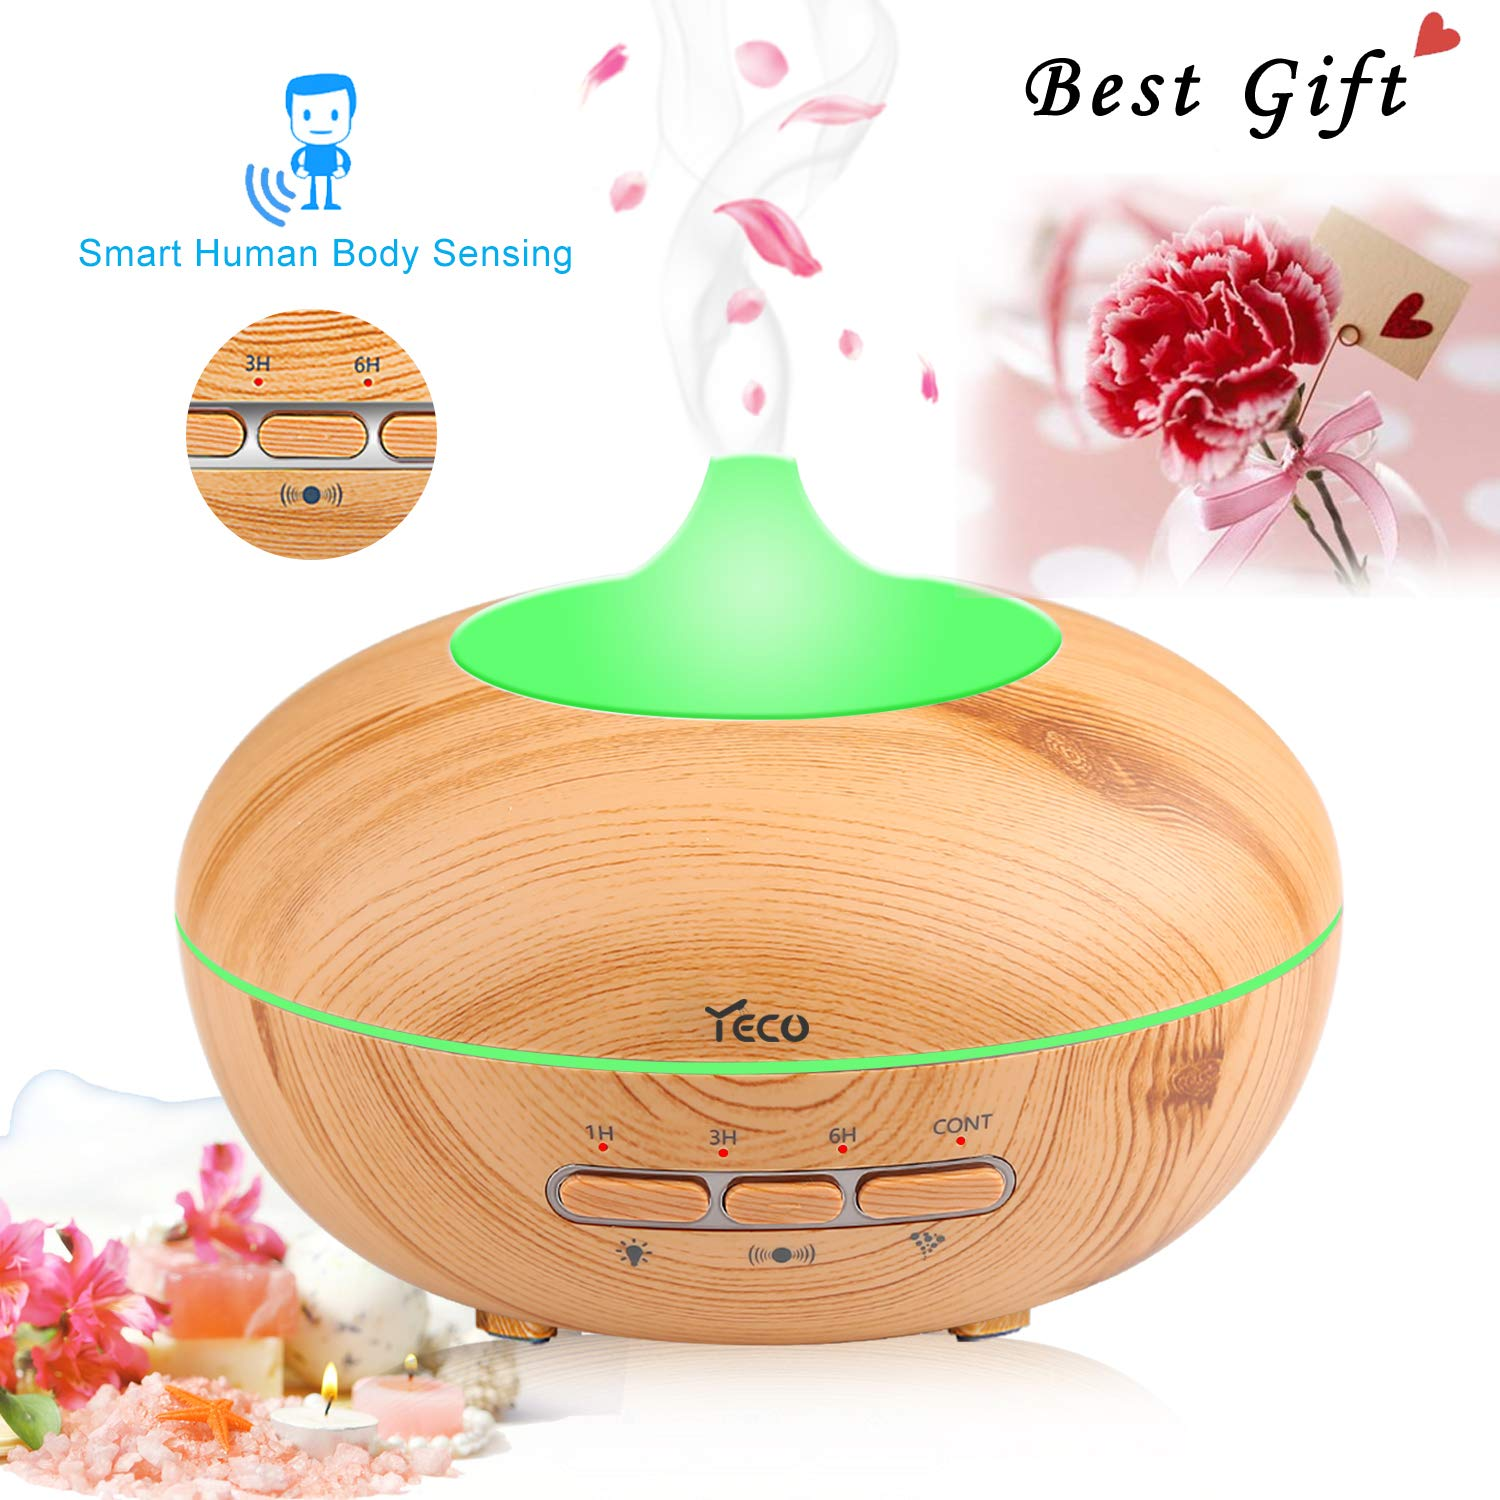 Auto-Sensing Essential Oil Diffuser, YECO 300ml Wood Grain Aromatherapy Diffuser Ultrasonic Cool Mist Humidifier with 4 Timer Settings 7 Color Changing&Waterless Auto Shut-off for Home Office Yoga Spa